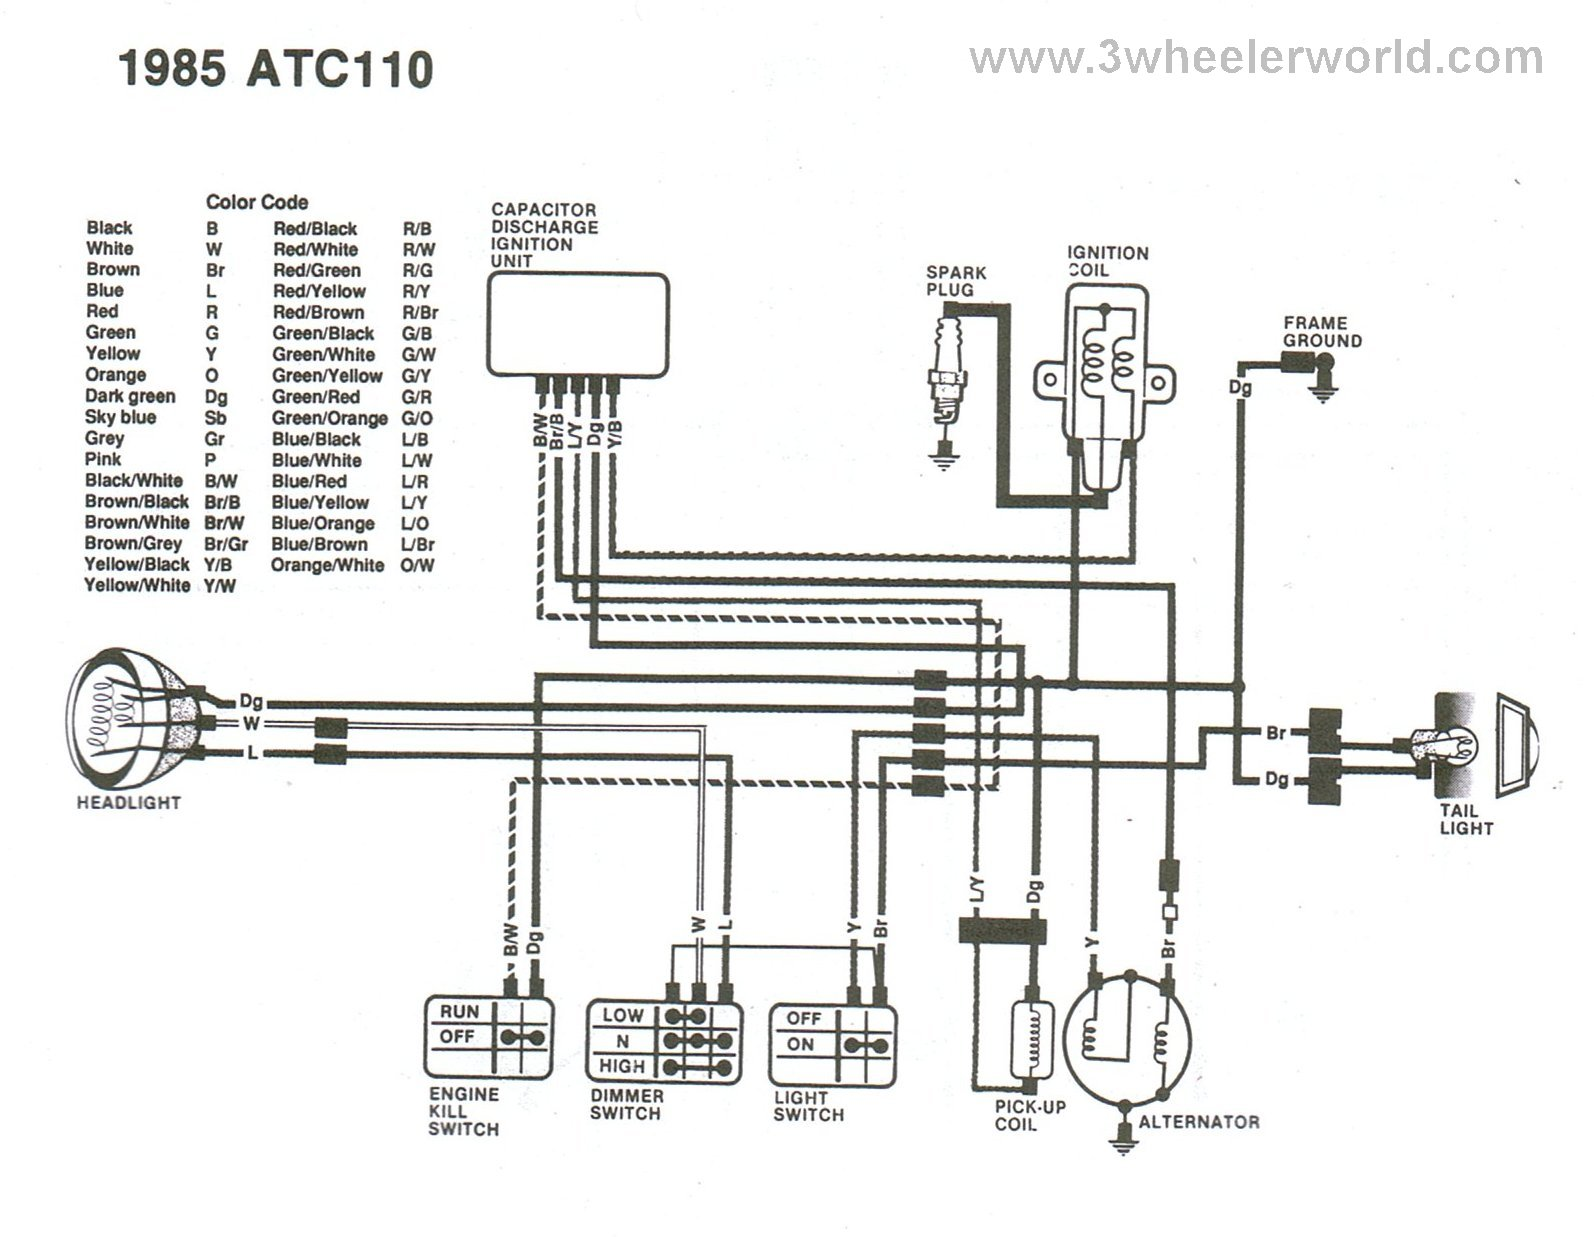 3 wheeler world tech help honda wiring diagrams 110 Plug Wiring